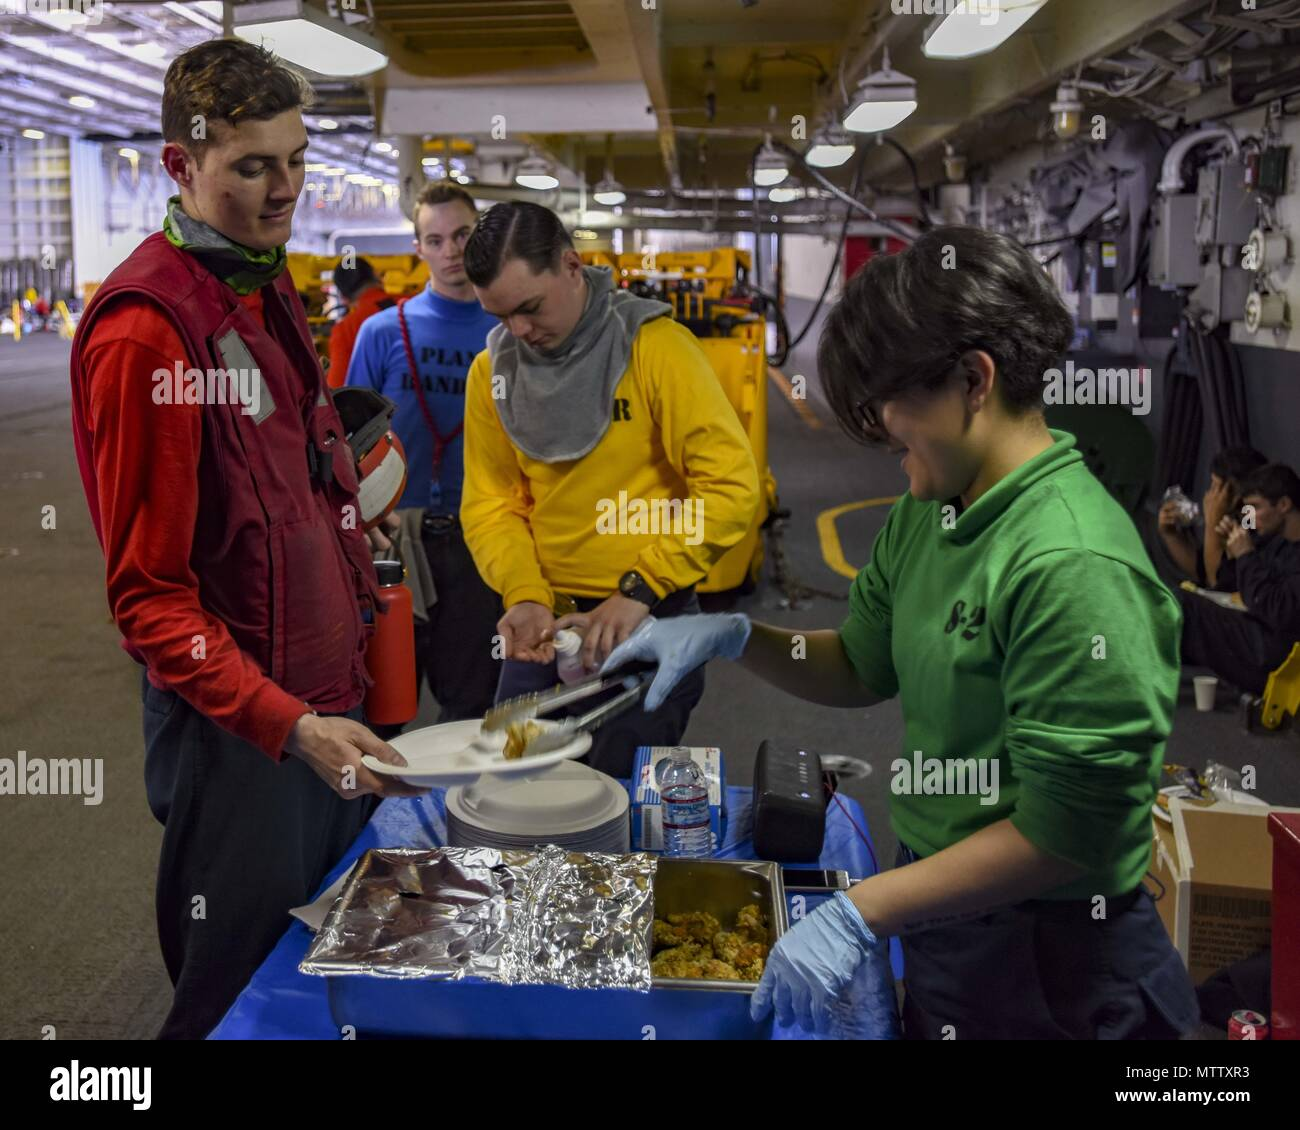 180516-N-AC117-0086 WATERS SOUTH OF JAPAN (May 16, 2018) Culinary Specialist Seaman Kate Millanayala, from Las Vegas, serves food in the hangar bay of the Navy's forward-deployed aircraft carrier, USS Ronald Reagan (CVN 76), during a replenishment-at-sea with Military Sealift Command (MSC) dry cargo/ammunition ship USNS Cesar Chavez (T-AKE 14), May 16, 2018. The non-combatant, civilian-crewed ship, operated by MSC, provides fuel, food, ordnance, spare parts, mail and other supplies to Navy ships throughout the world. Ronald Reagan, the flagship of Carrier Strike Group 5, provides a combat-read - Stock Image